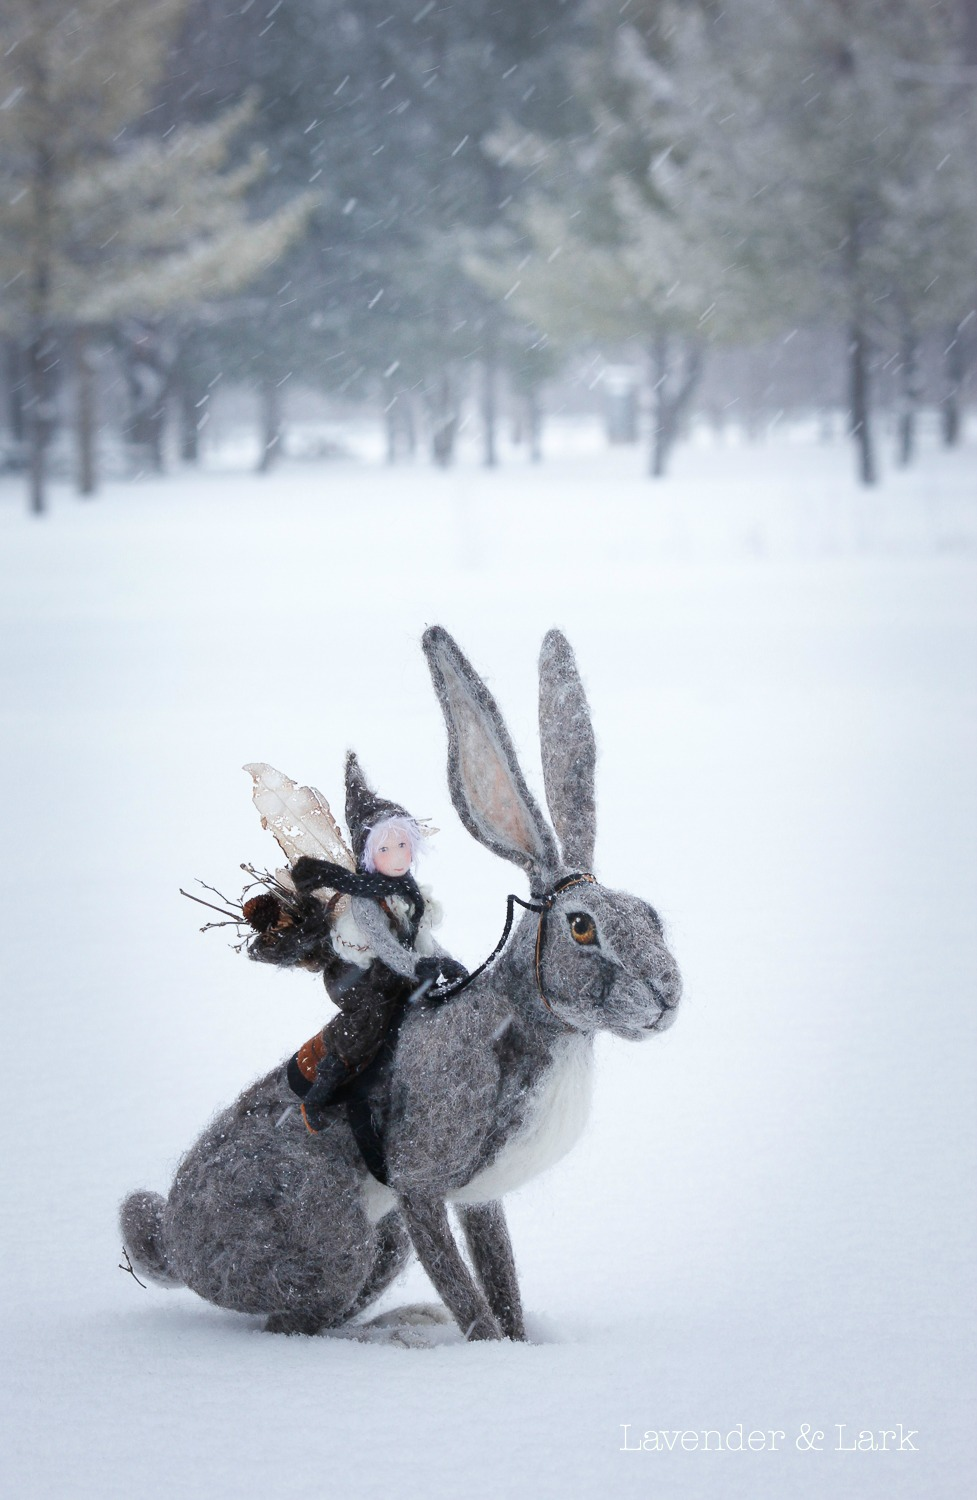 Fionn+and+the+Hare+by+Lavender+&+Lark.jpg